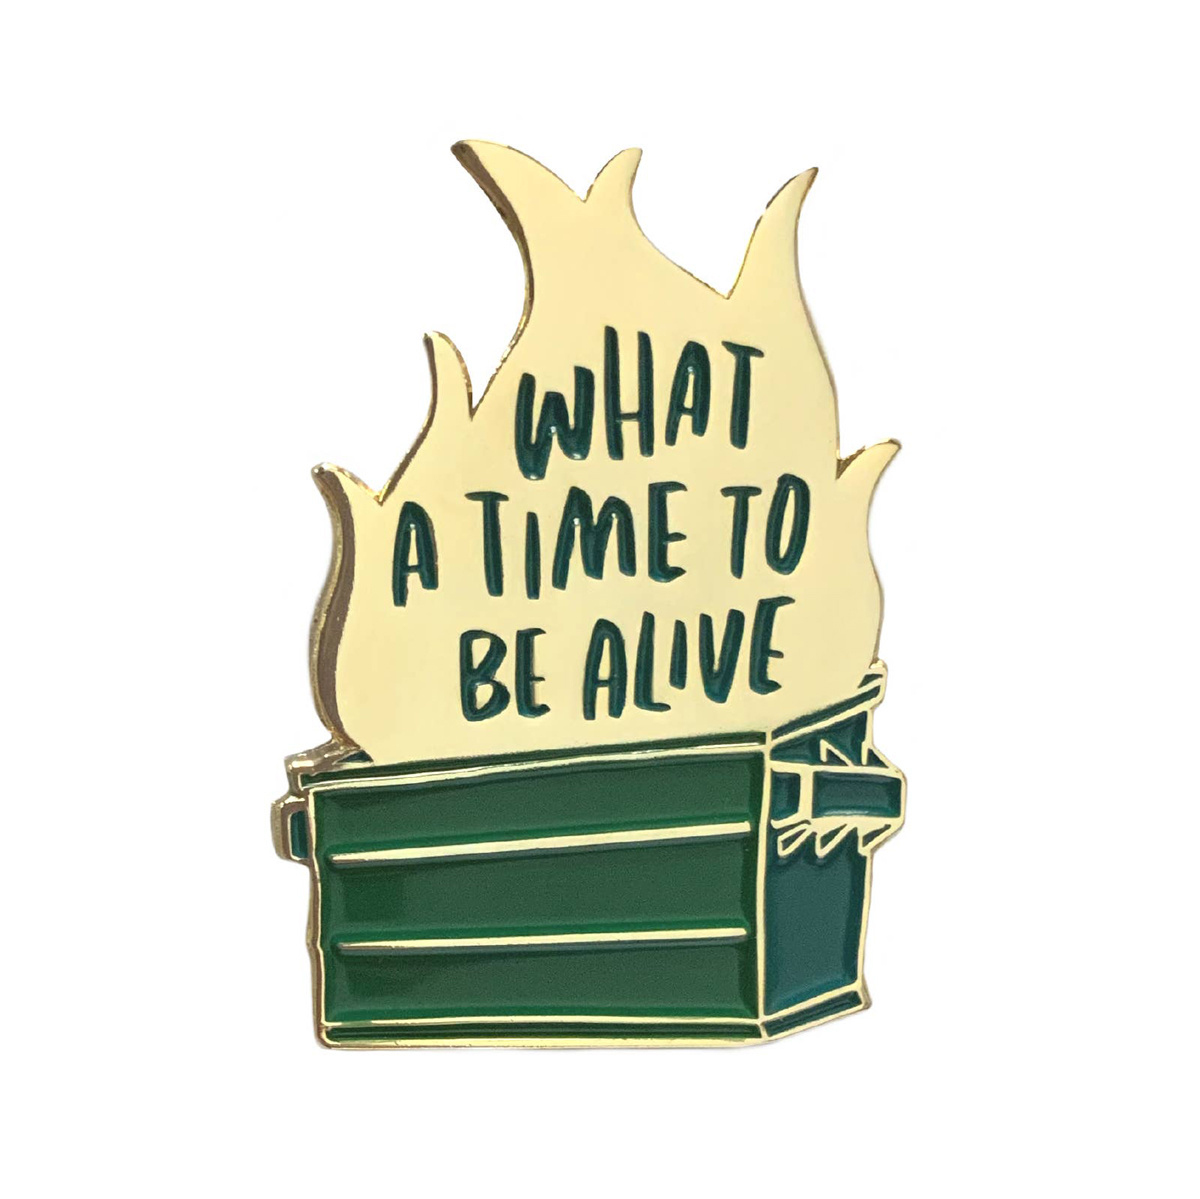 and Here We Are Dumpster Fire Enamel Pin